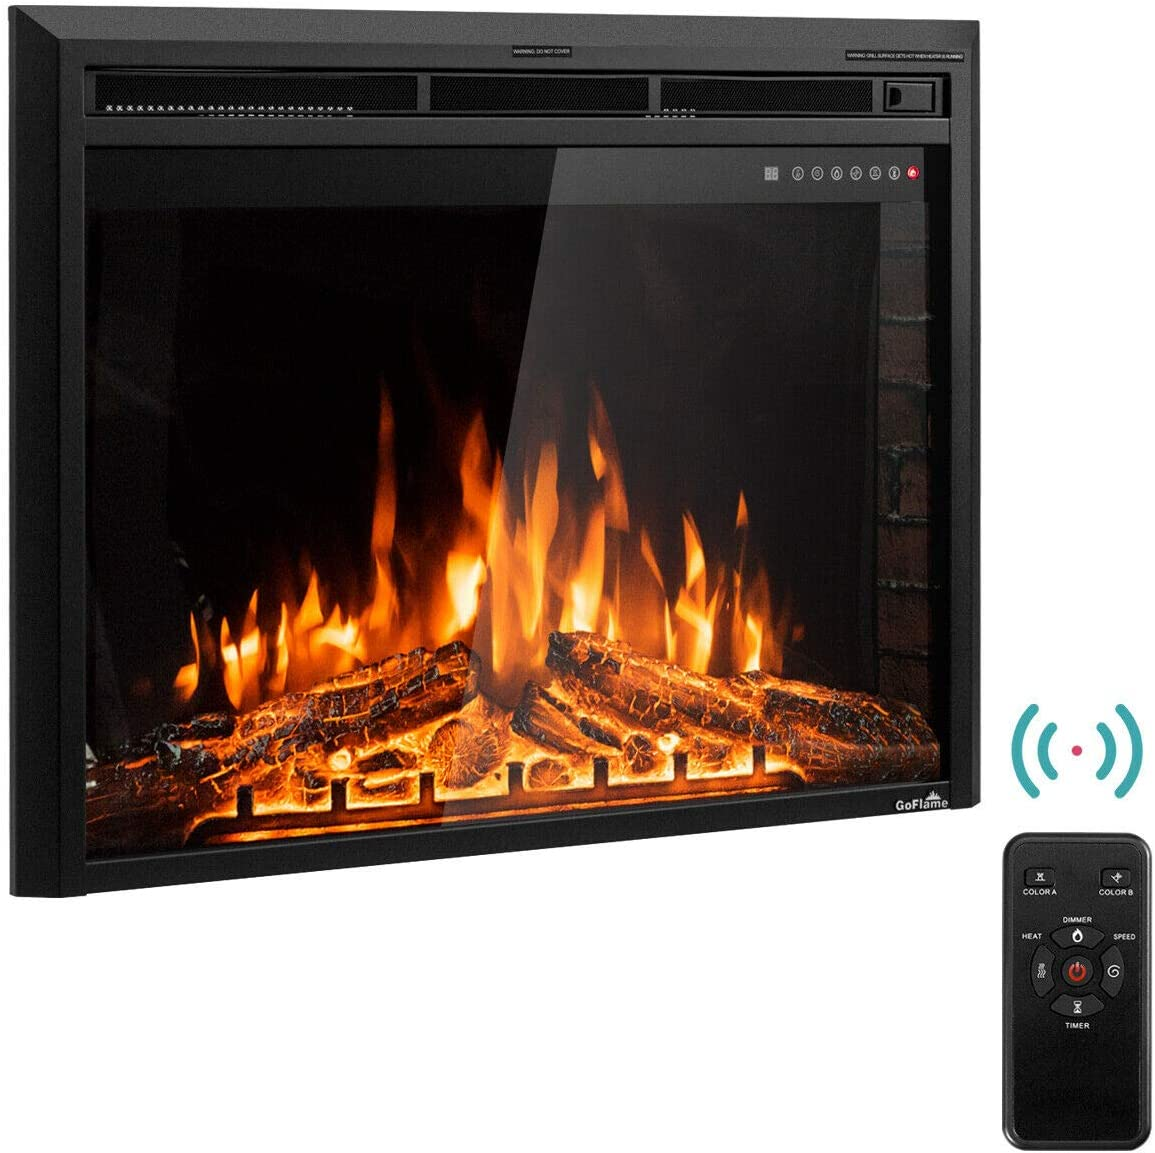 "Tangkula Electric Fireplace Insert 36"", Smokeless 750W-1500W Electric Stove Heater with Remote Control and Adjustable Time Setting for Home Use, Colorful Flame Option Wall Mounted Heater, Black"